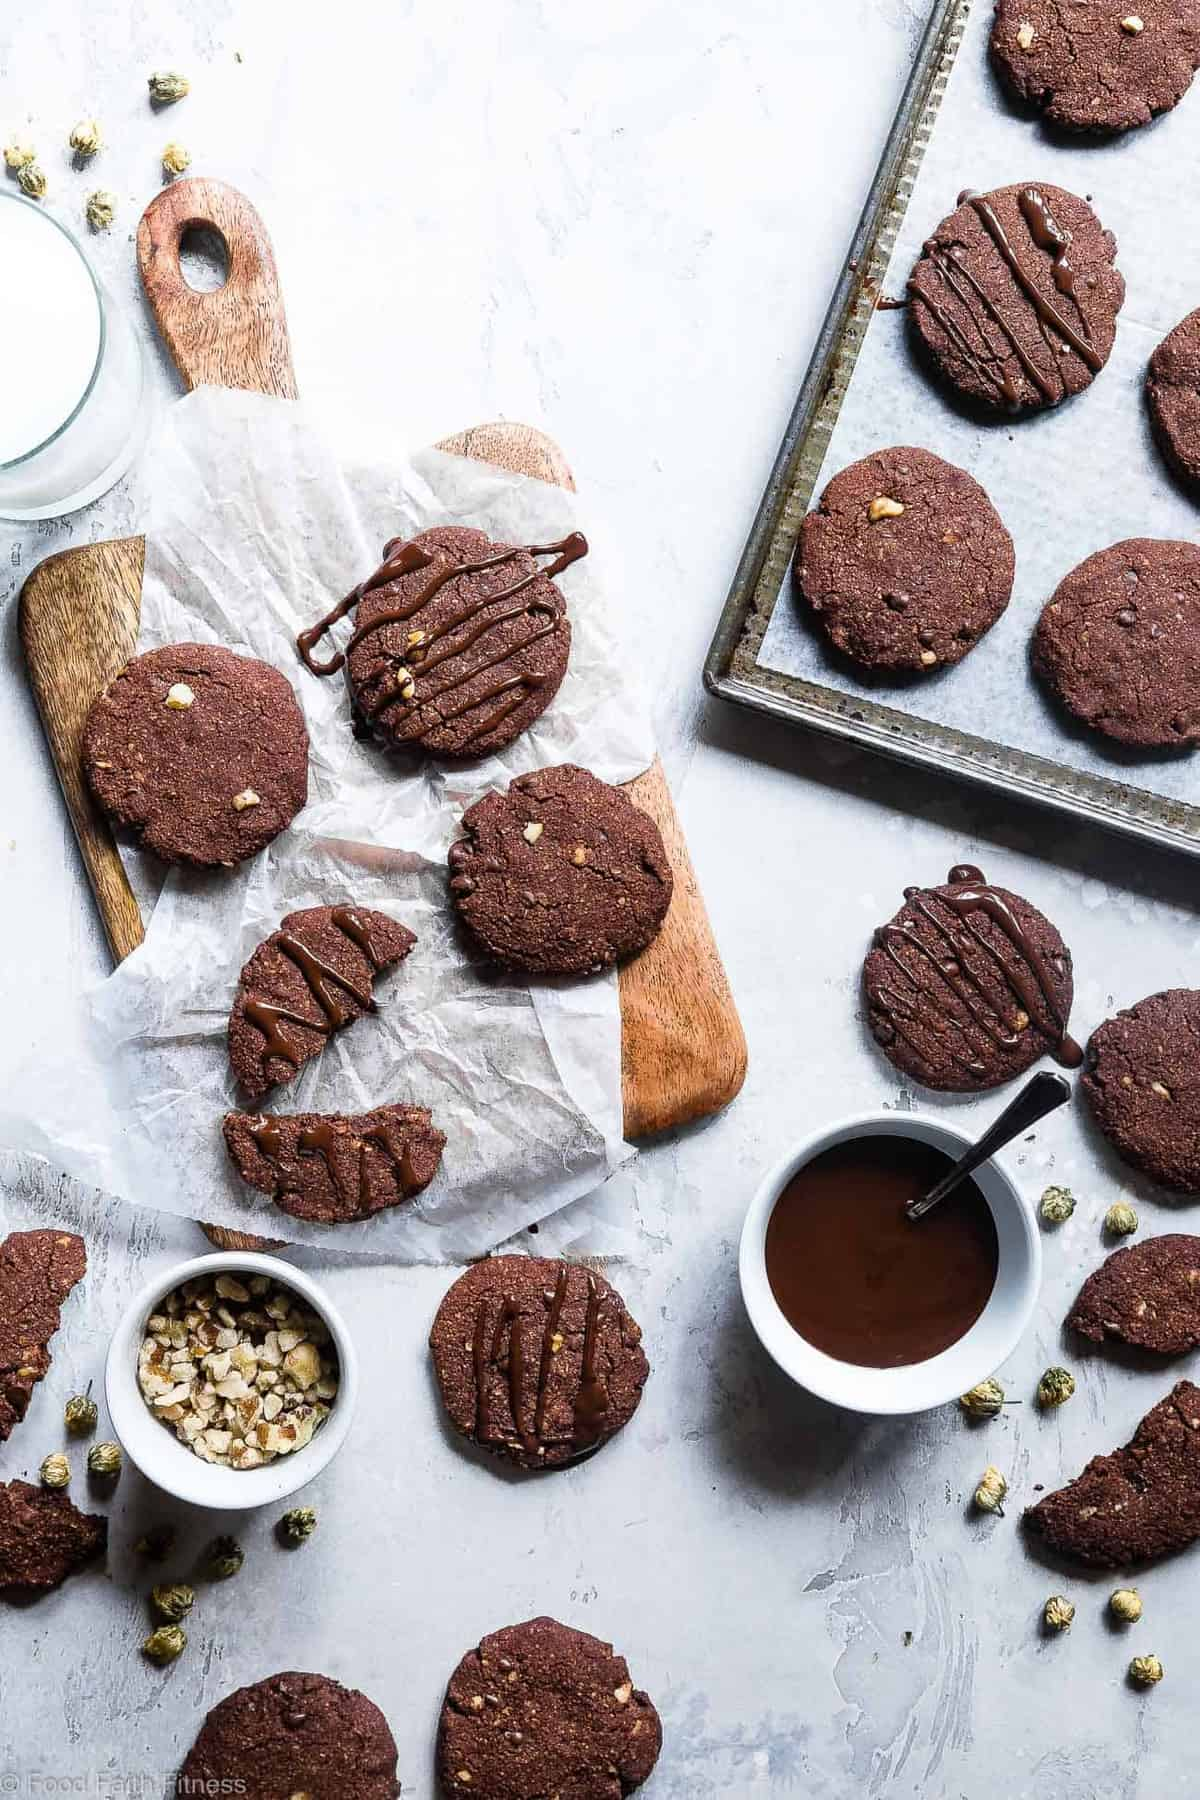 Vegan Gluten Free Brownie Cookies -These healthy and gluten free Chocolate Cookies are like always getting the edge piece- SO dense and chewy! You won't believe they're gluten free, paleo and only 120 calories! | #Foodfaithfitness | #Vegan #Paleo #Glutenfree #Dairyfree #Healthy